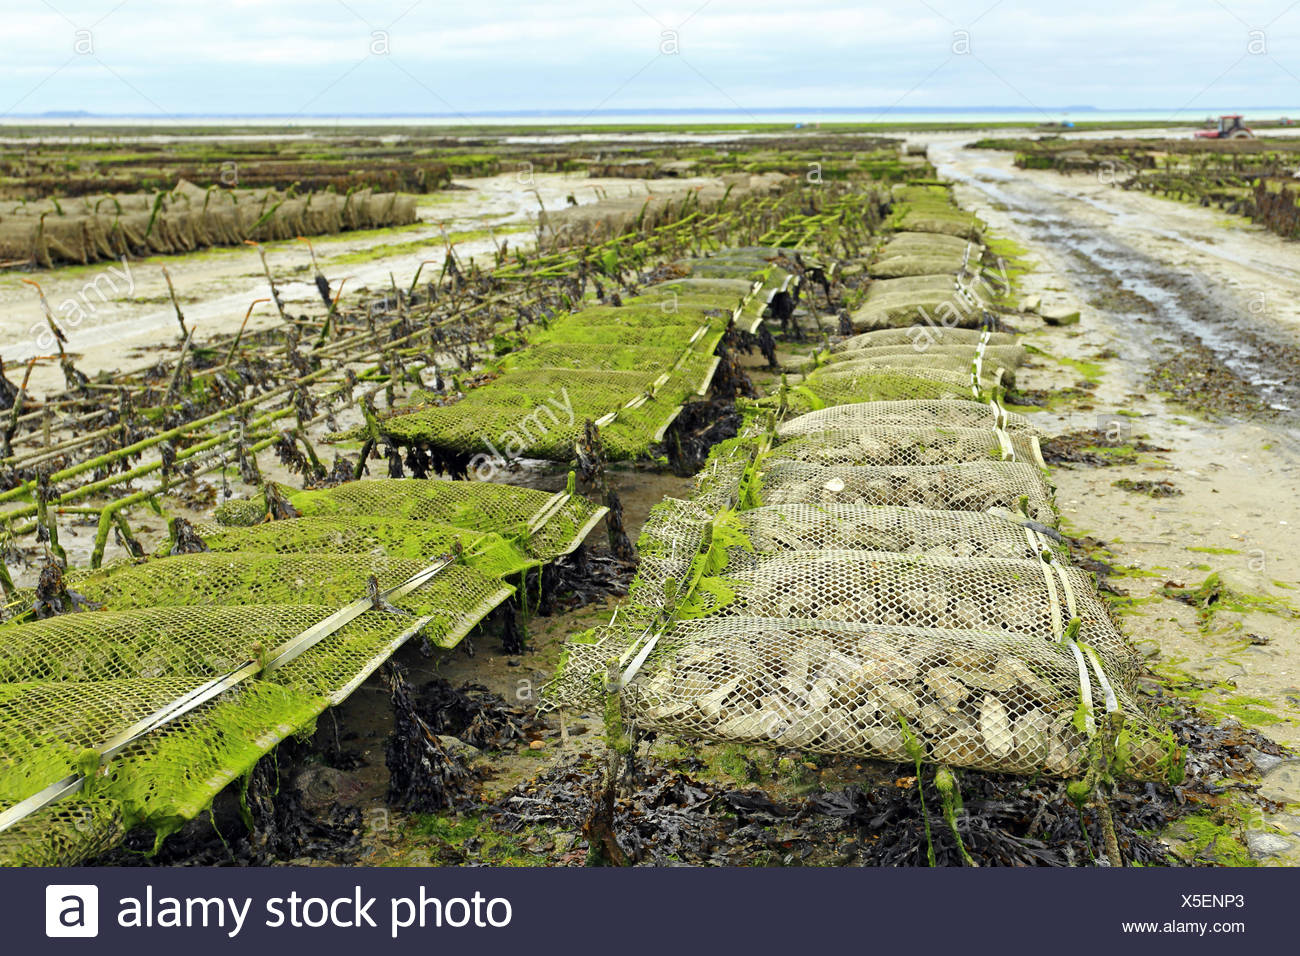 Oyster farming at Cancale, France Stock Photo